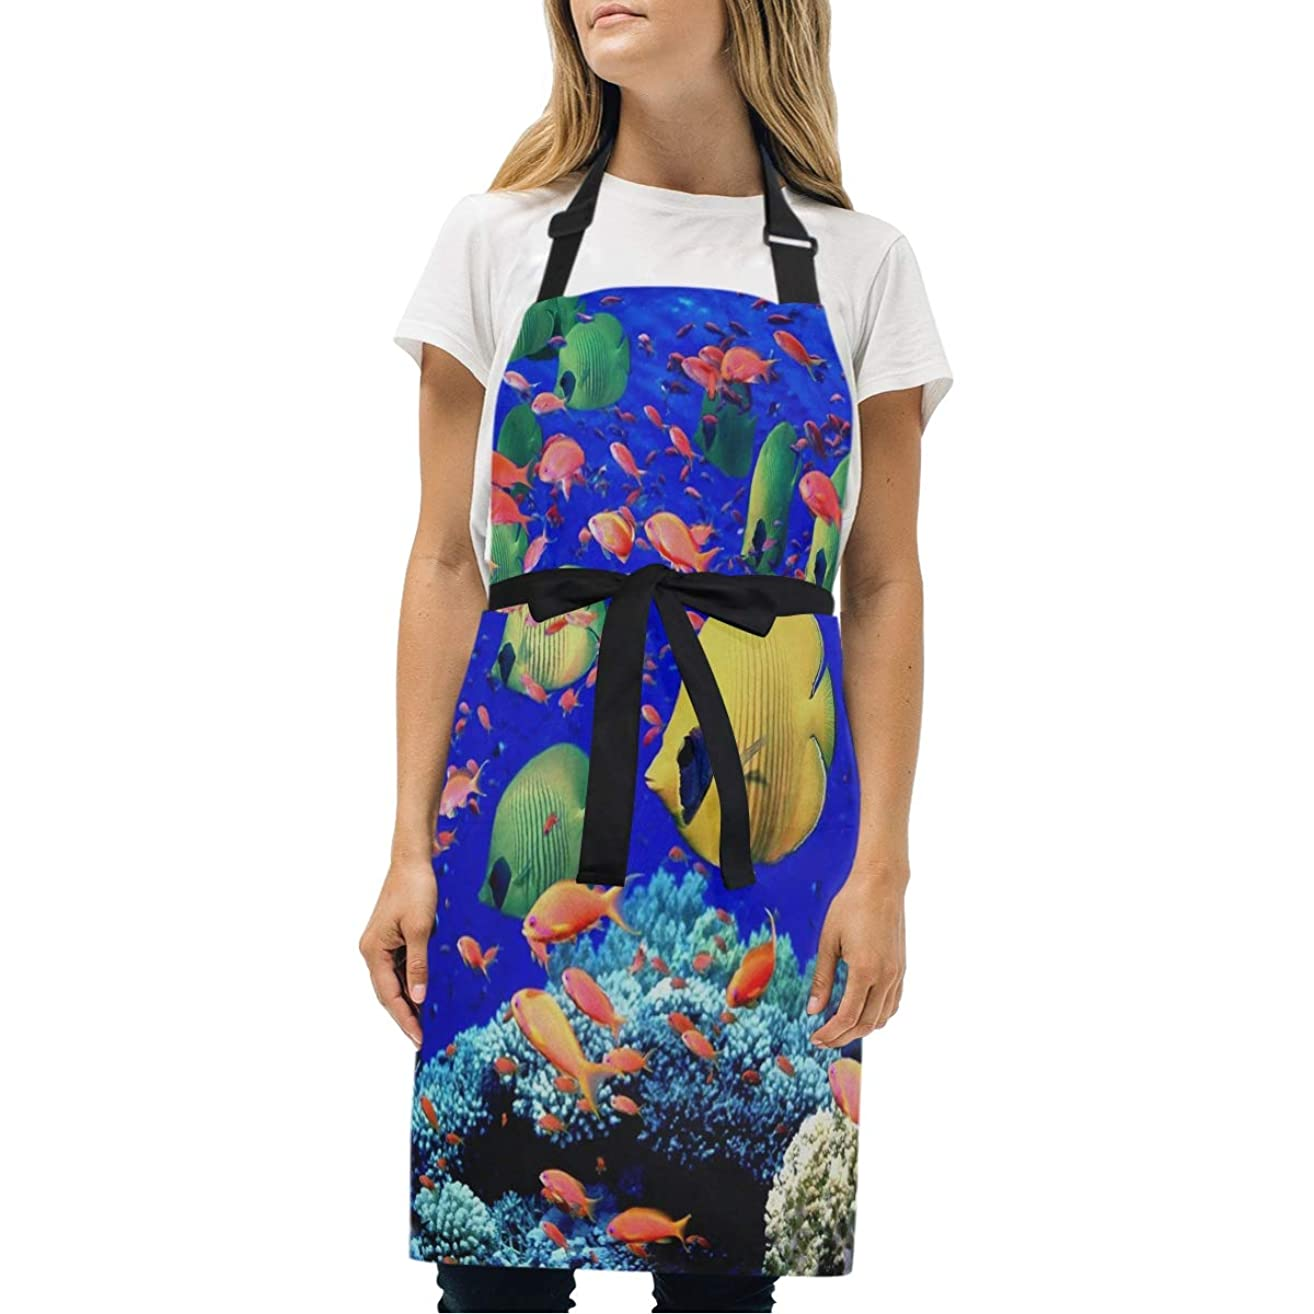 HJudge Womens Aprons Beautiful Underwater World Kitchen Bib Aprons with Pockets Adjustable Buckle on Neck